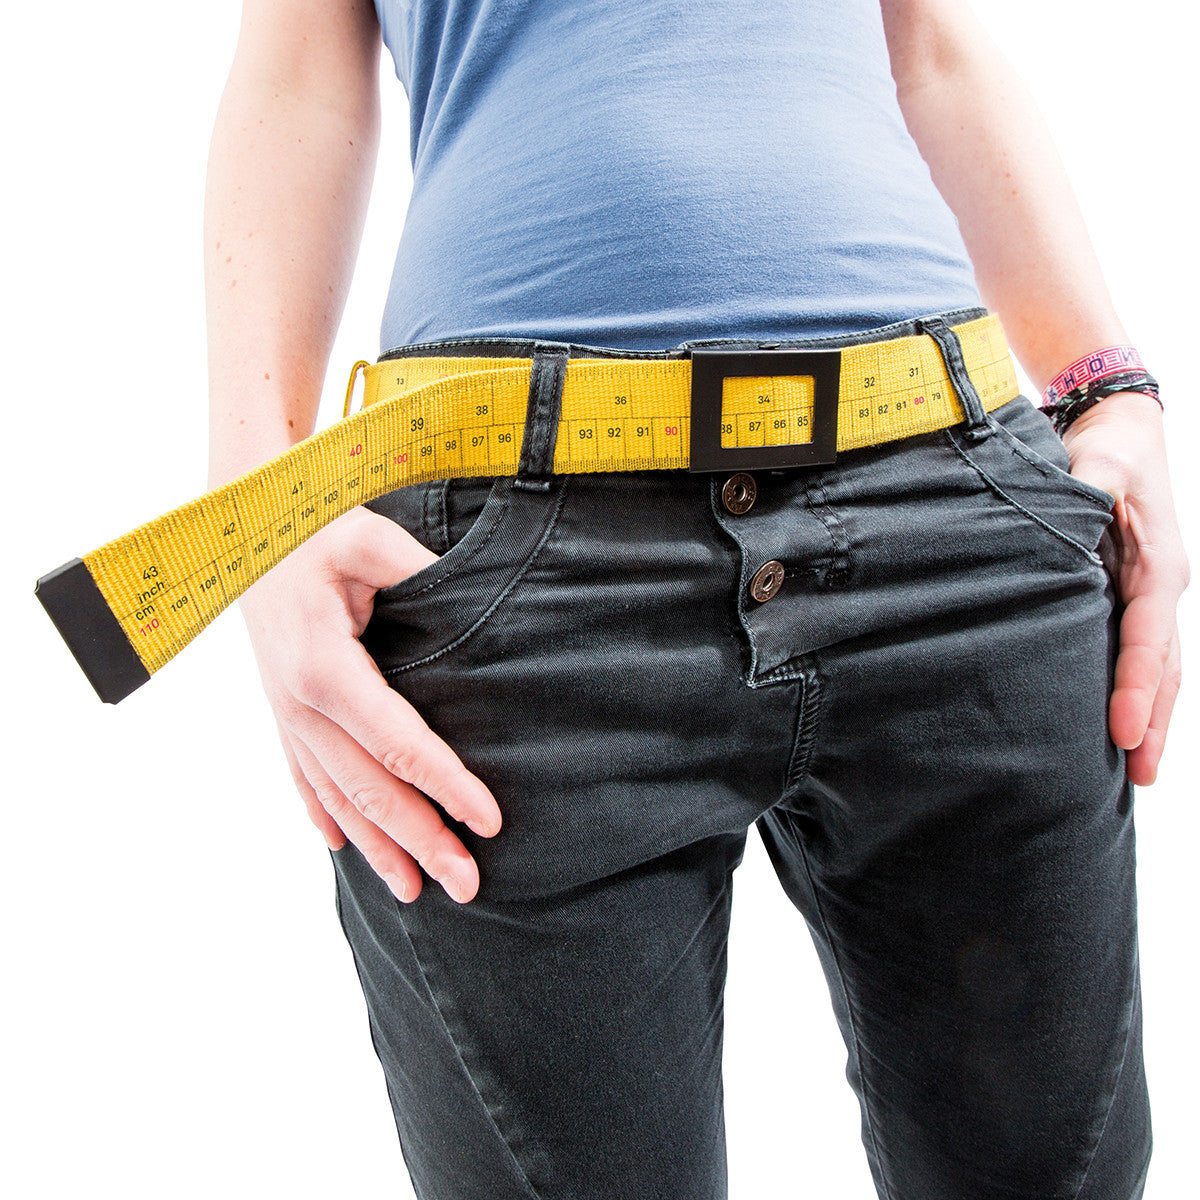 Donkey Products Diet Belt